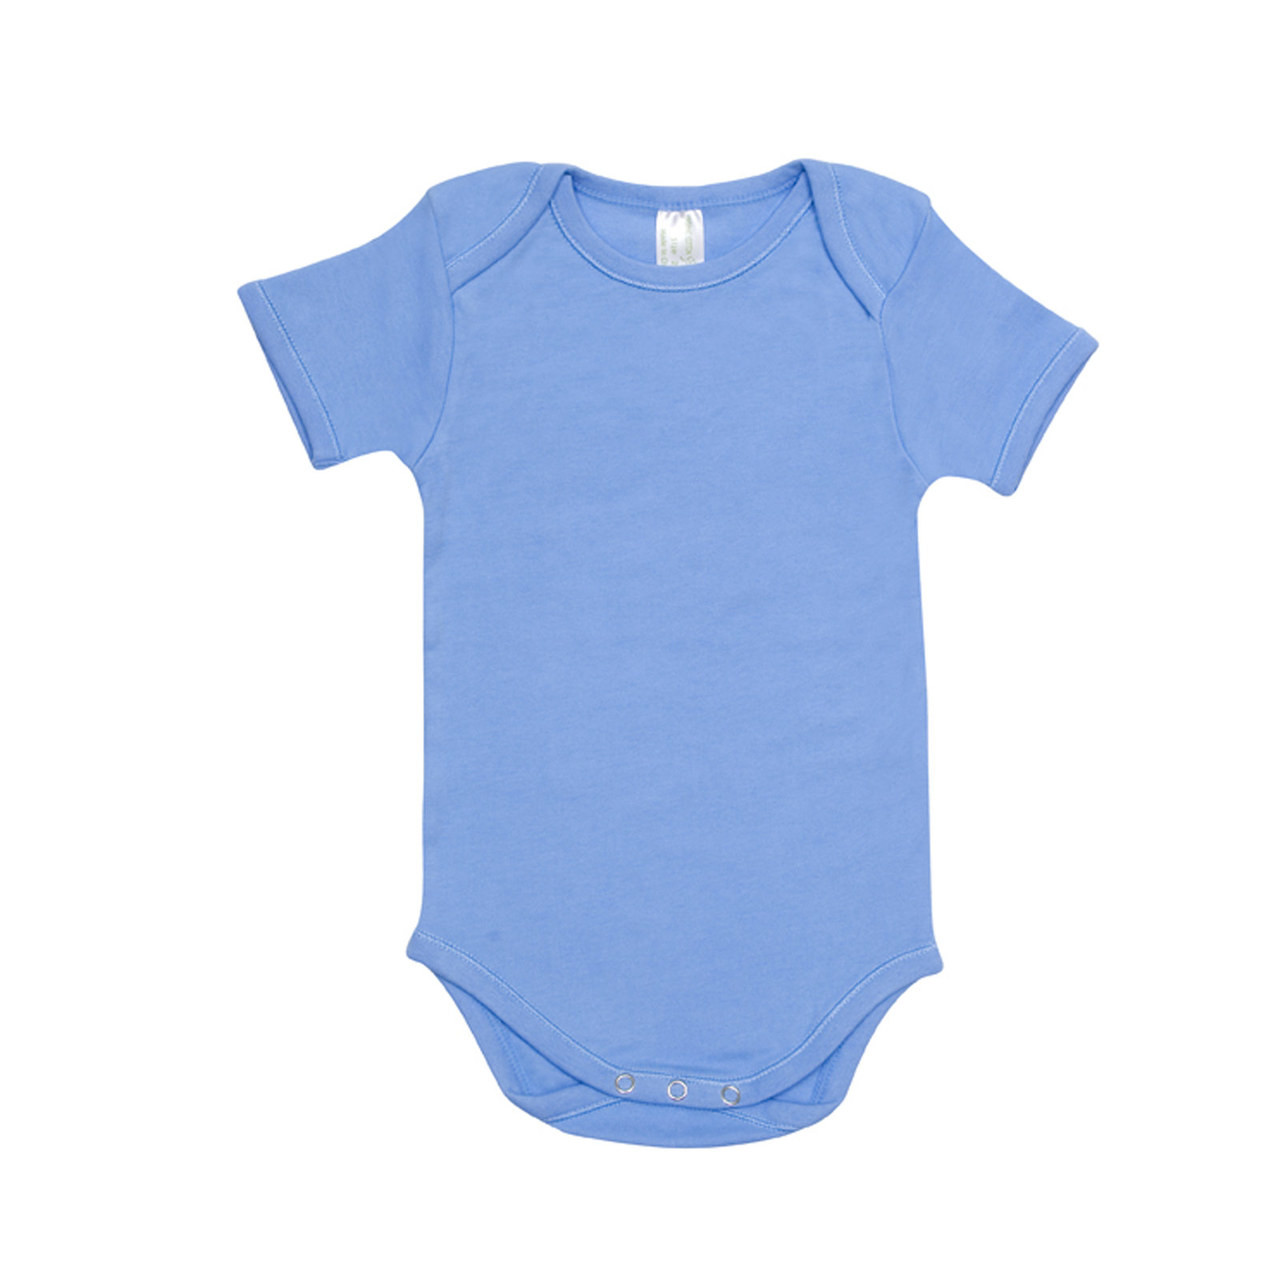 a9349d0e3 ... Wholesale Baby Clothes · KAI | Baby Rompers Organic Cotton. Click to  zoom in. Click to zoom in